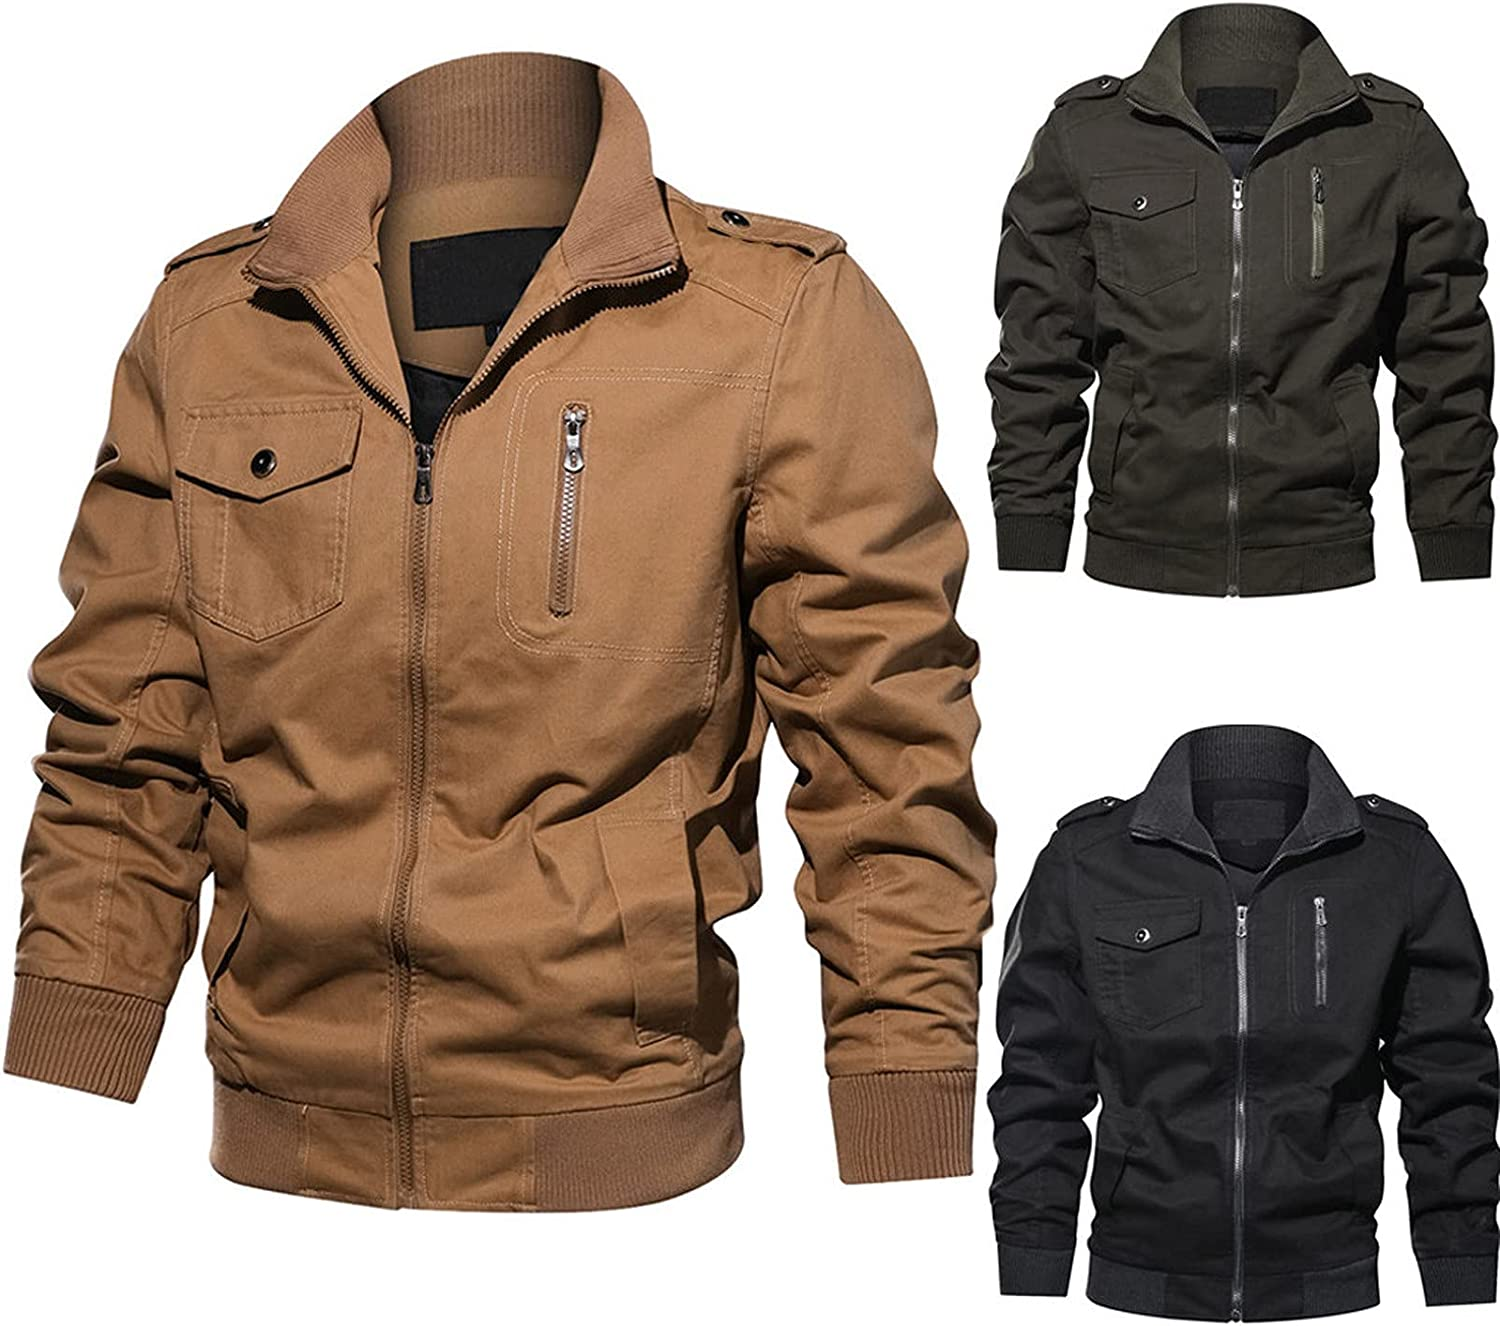 Men's Plus Size Military Jackets Cotton Solid Bomber Coat Stand Collar Zipper Jacket Motorcycle Outwear with Pockets 6XL